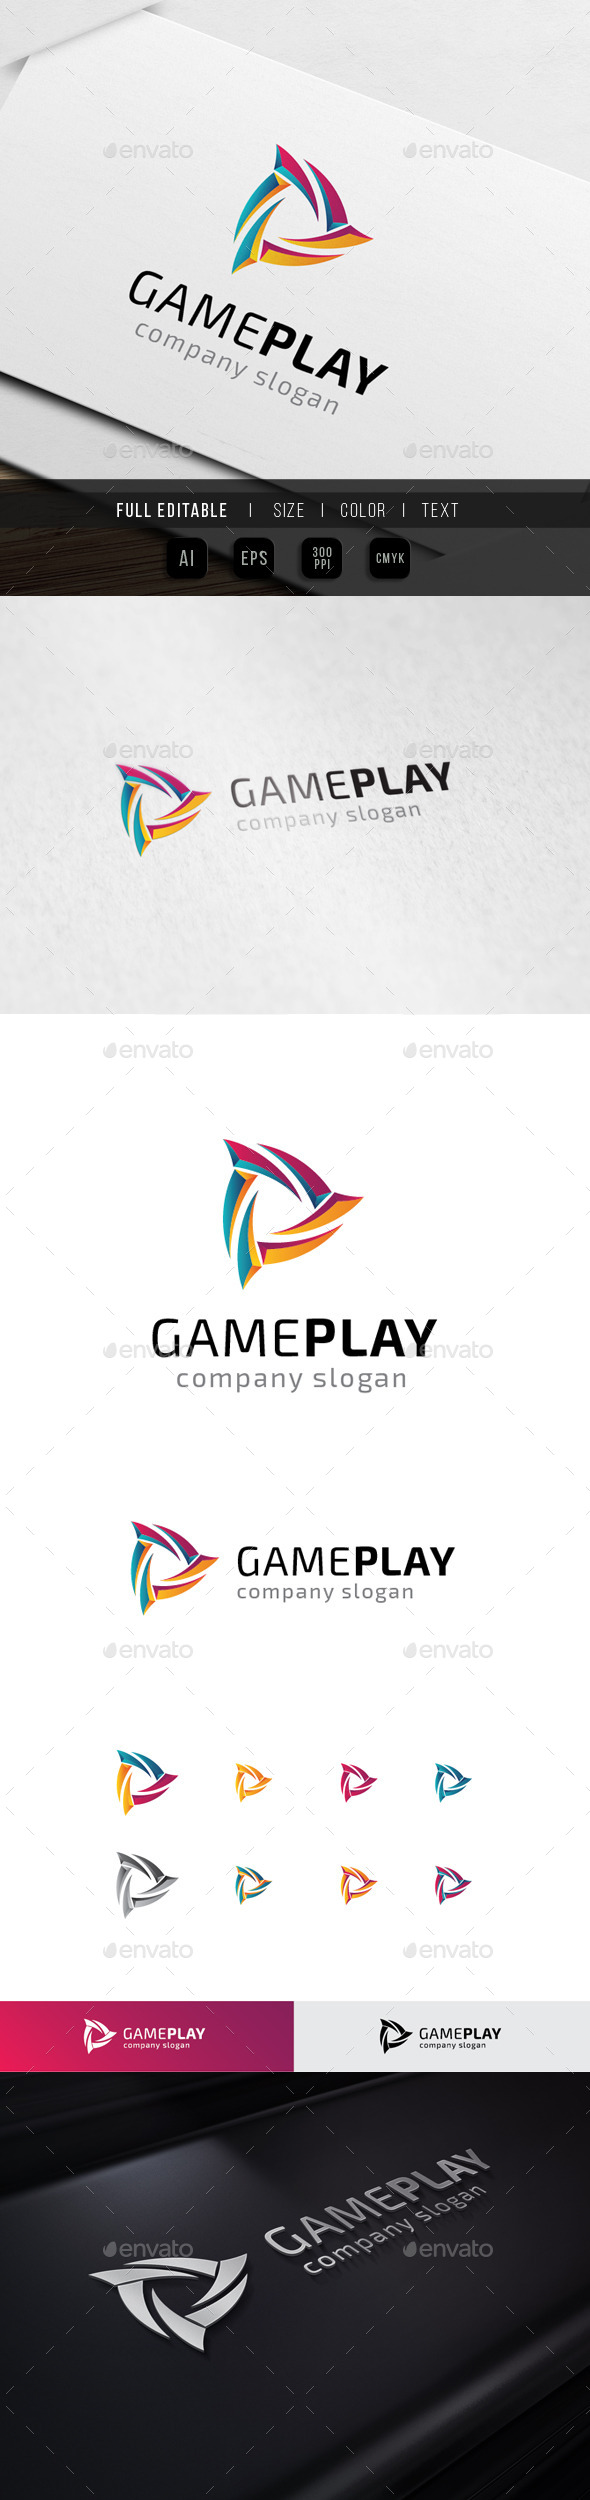 Wild Game - Play Multimedia - Abstract Logo Templates